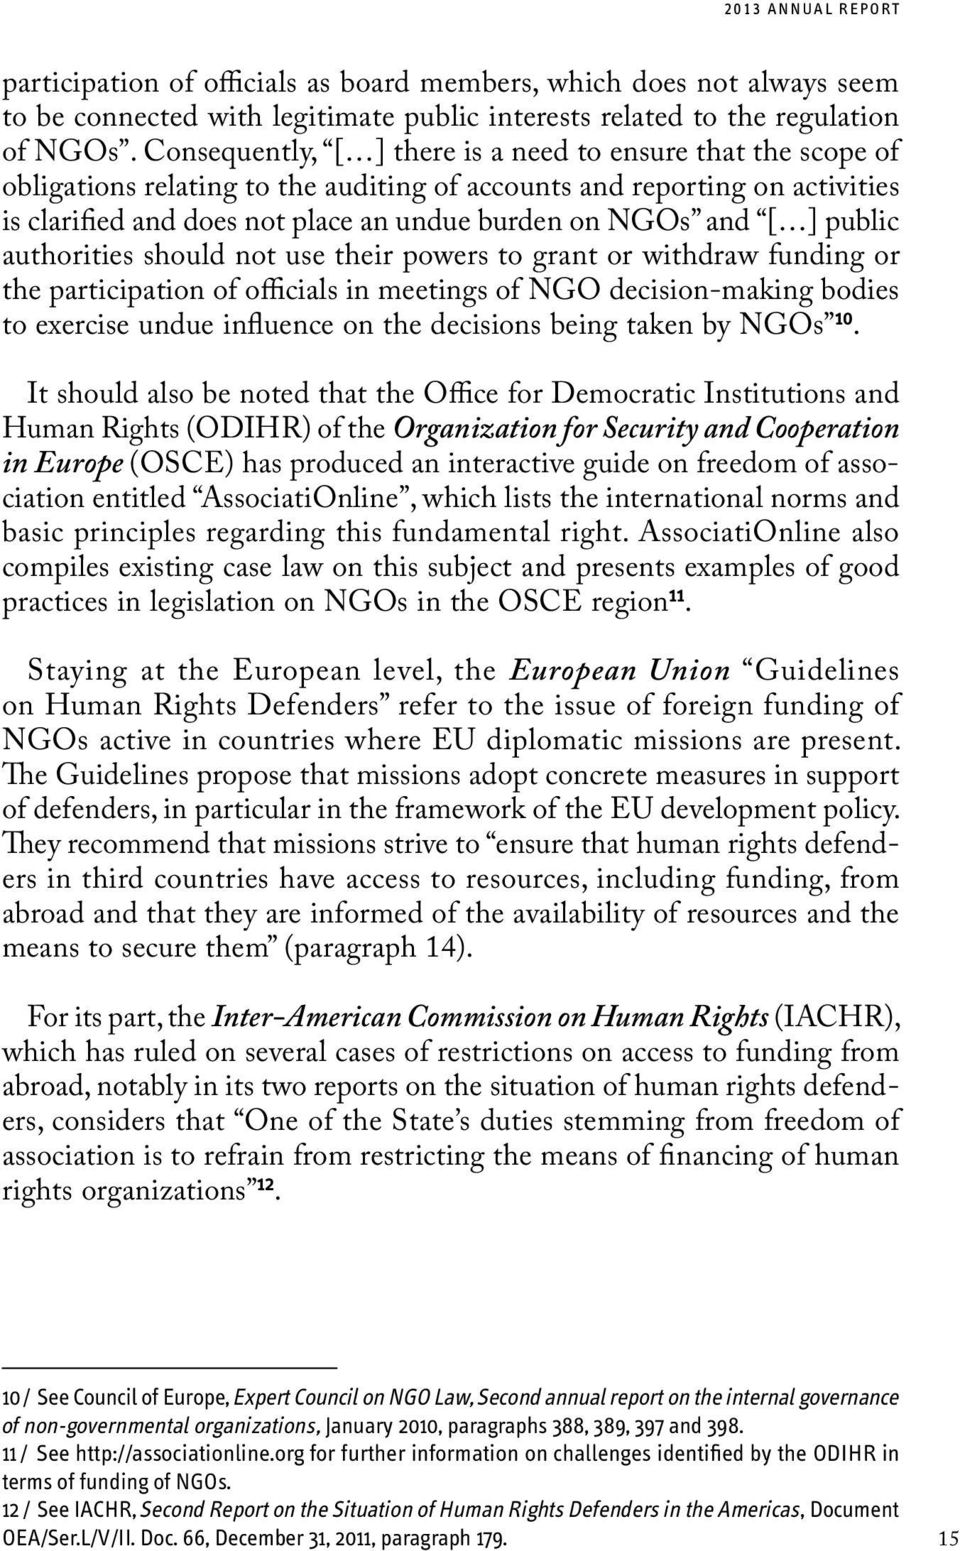 [ ] public authorities should not use their powers to grant or withdraw funding or the participation of officials in meetings of NGO decision-making bodies to exercise undue influence on the